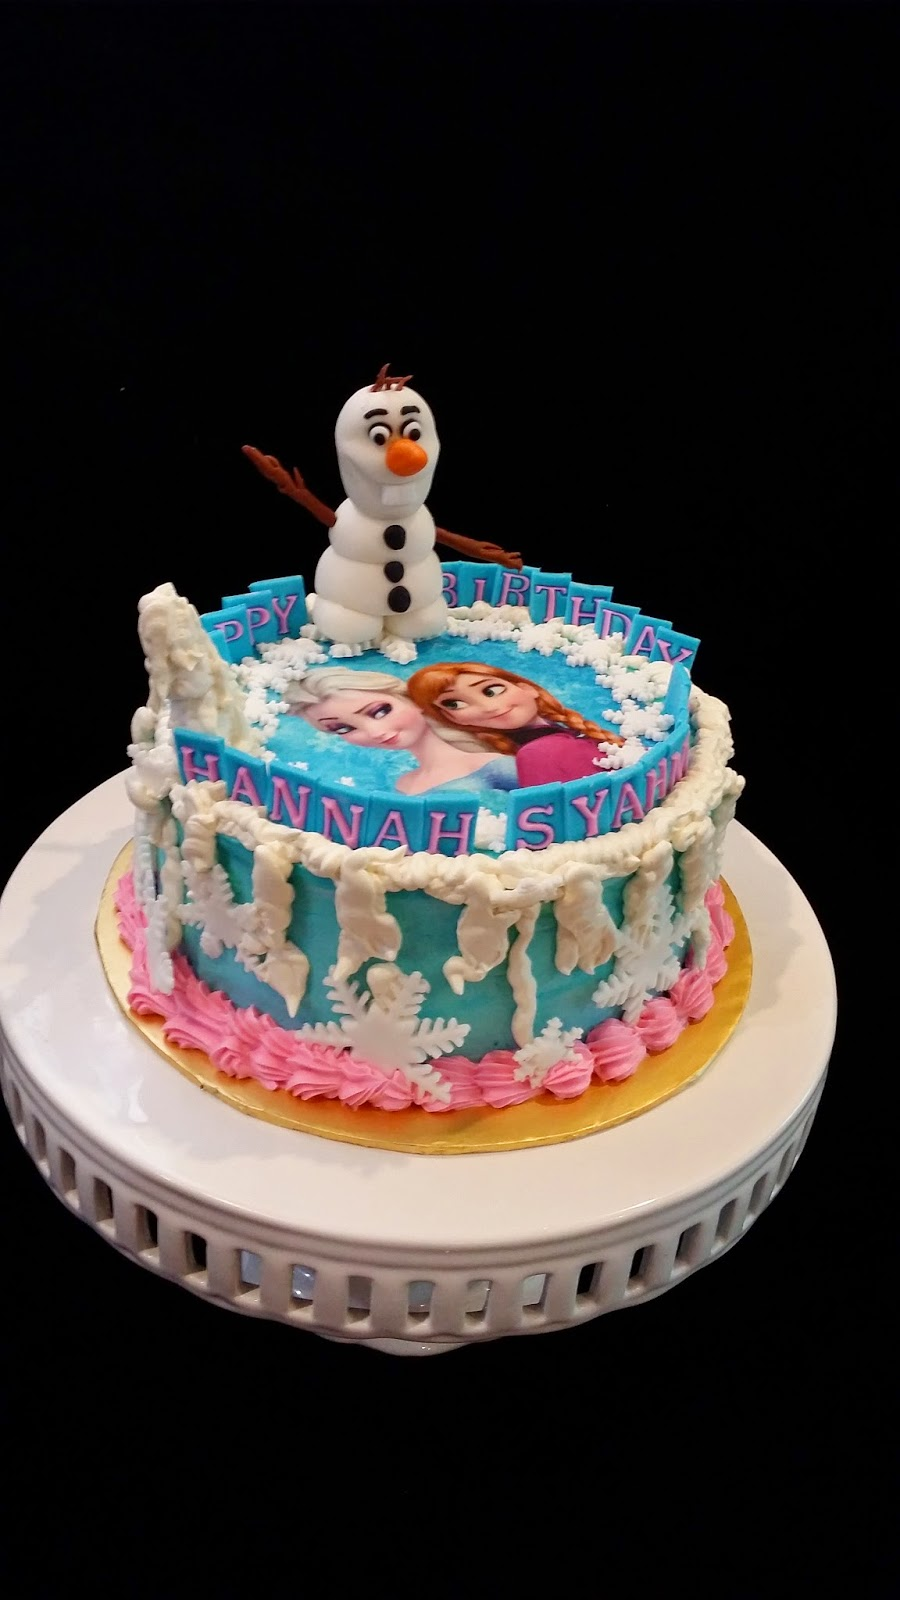 Birthday Cake Edible Image Disney : Sweet Creations: Disney Frozen cake with edible for Hannah ...